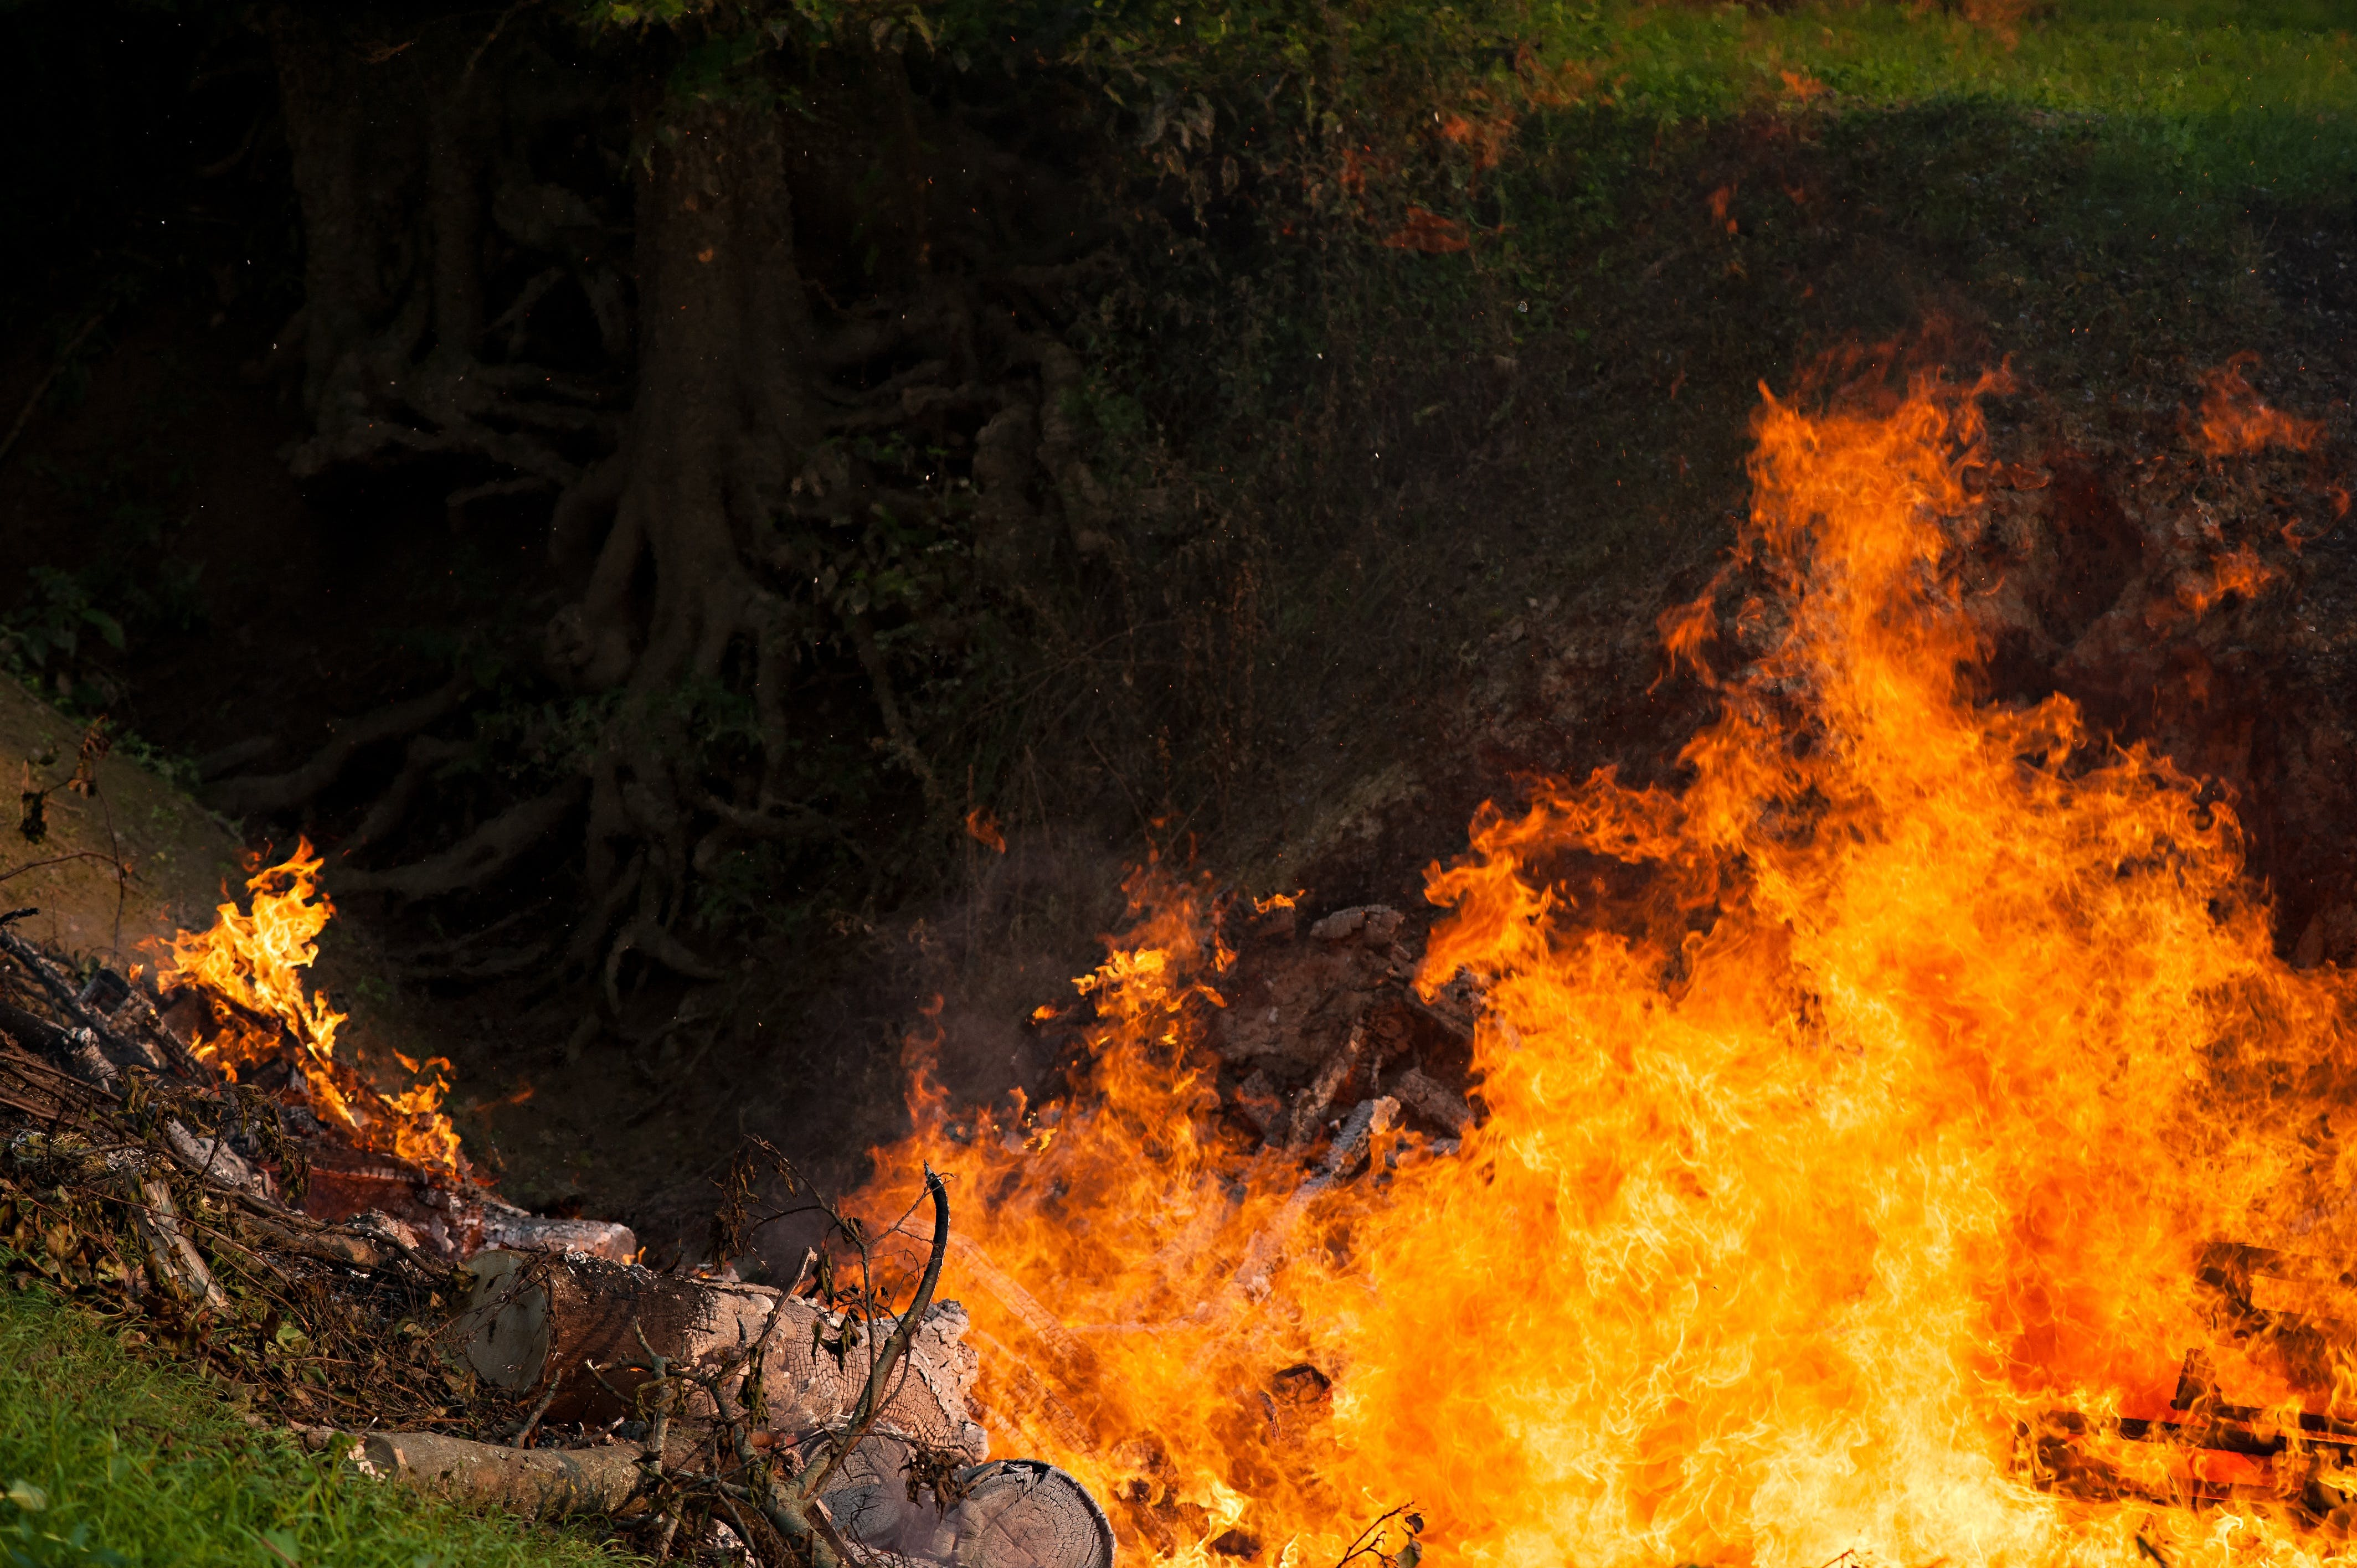 Free stock photo of fire, hot, flame, danger